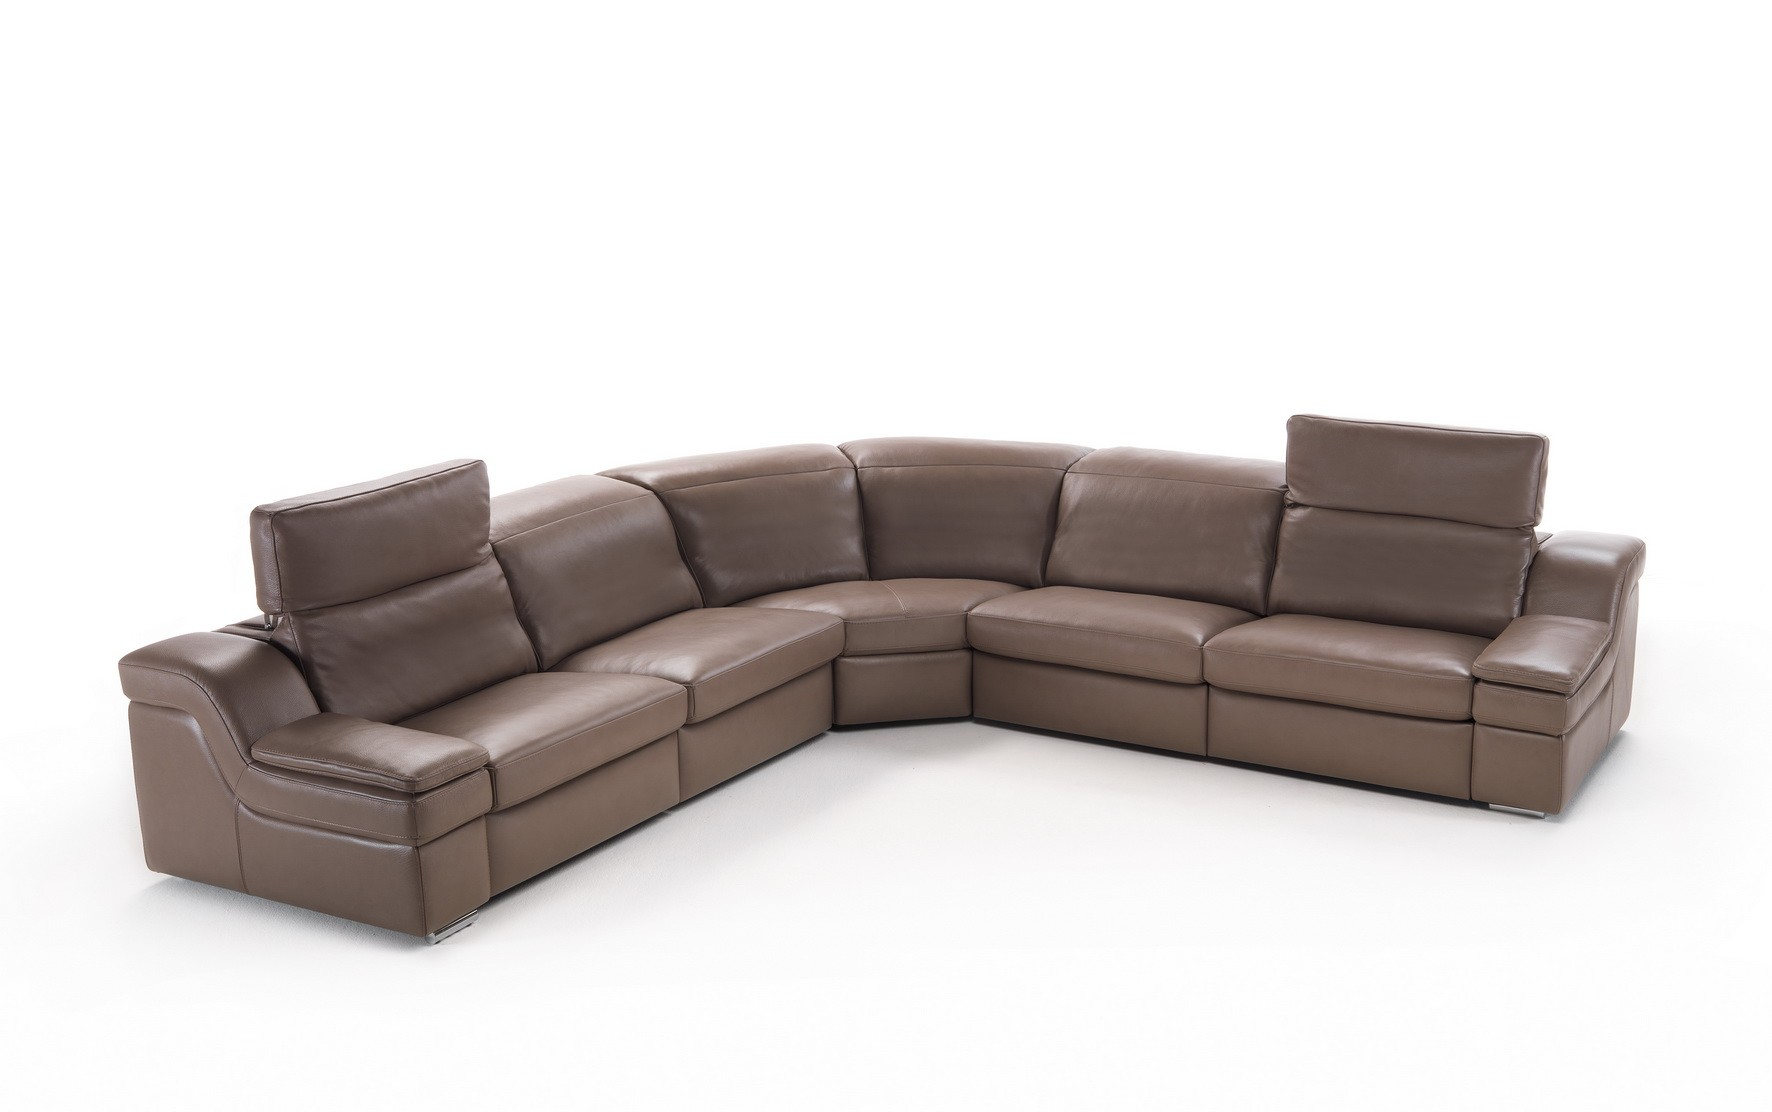 Brown Soft Italian Leather Sectional Sofa With Reclining